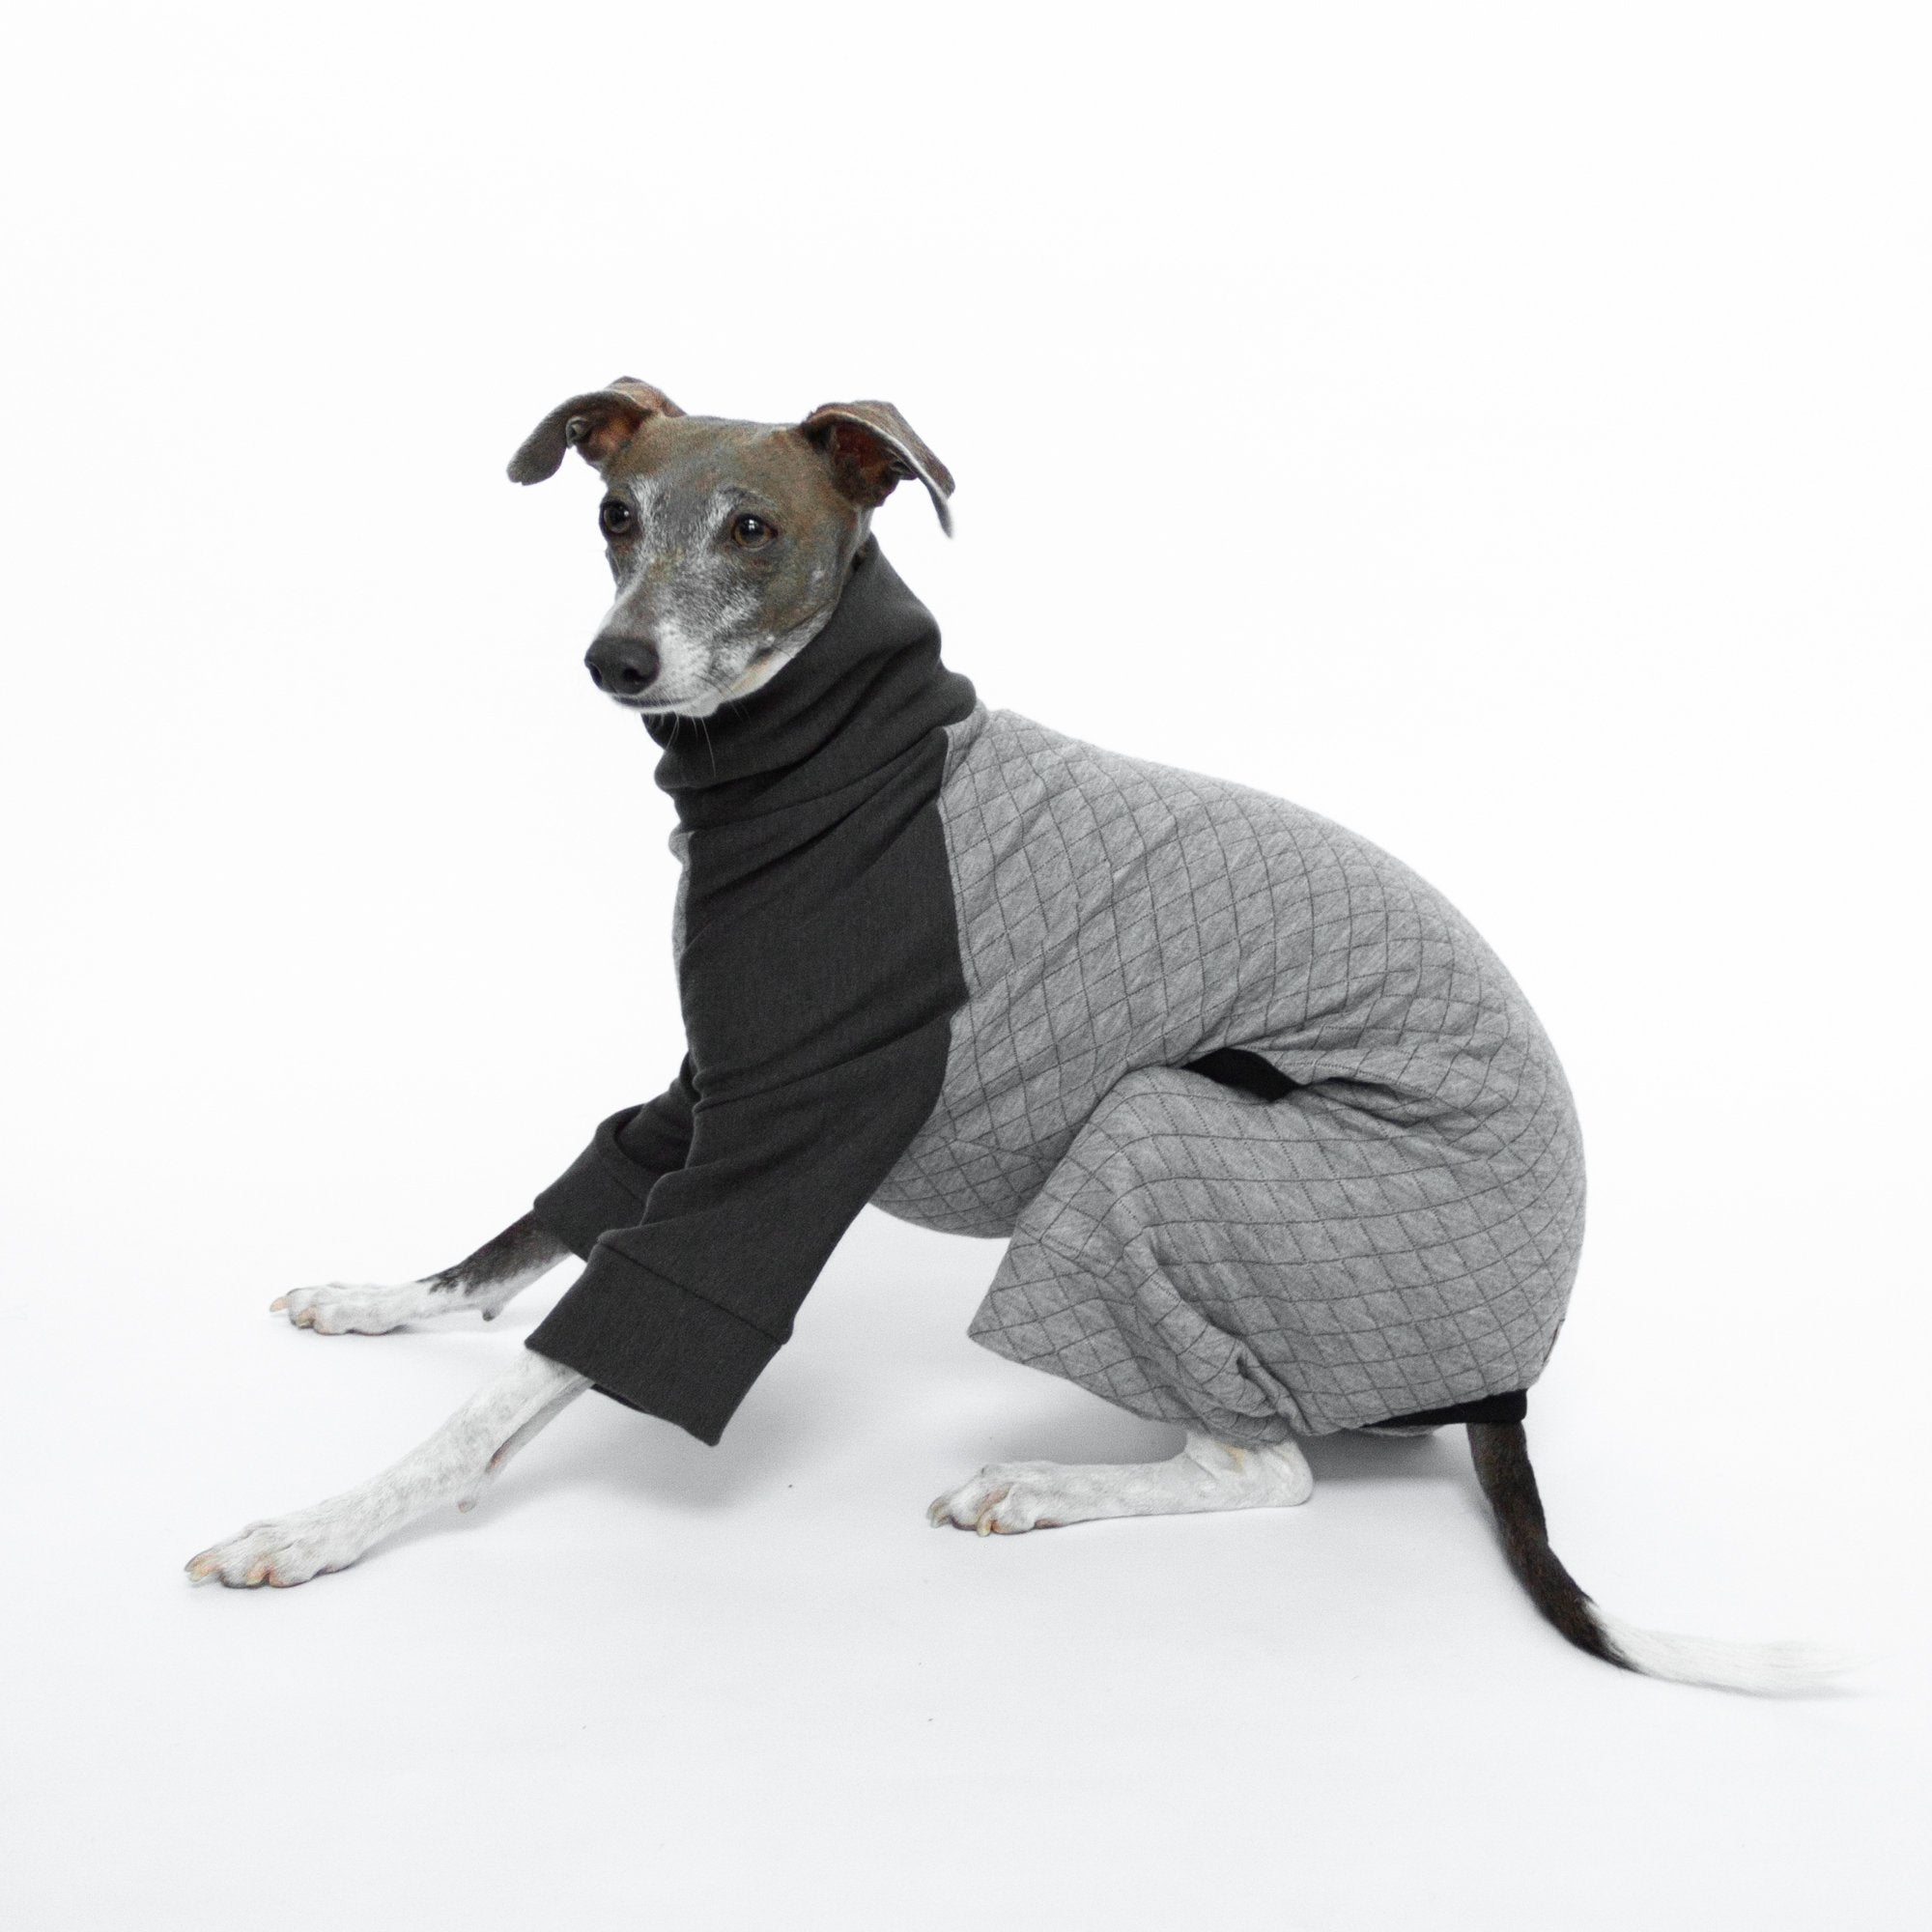 Kuvfur-dog-pajamas-onesie-quilted-grey-large-dog-small-dog